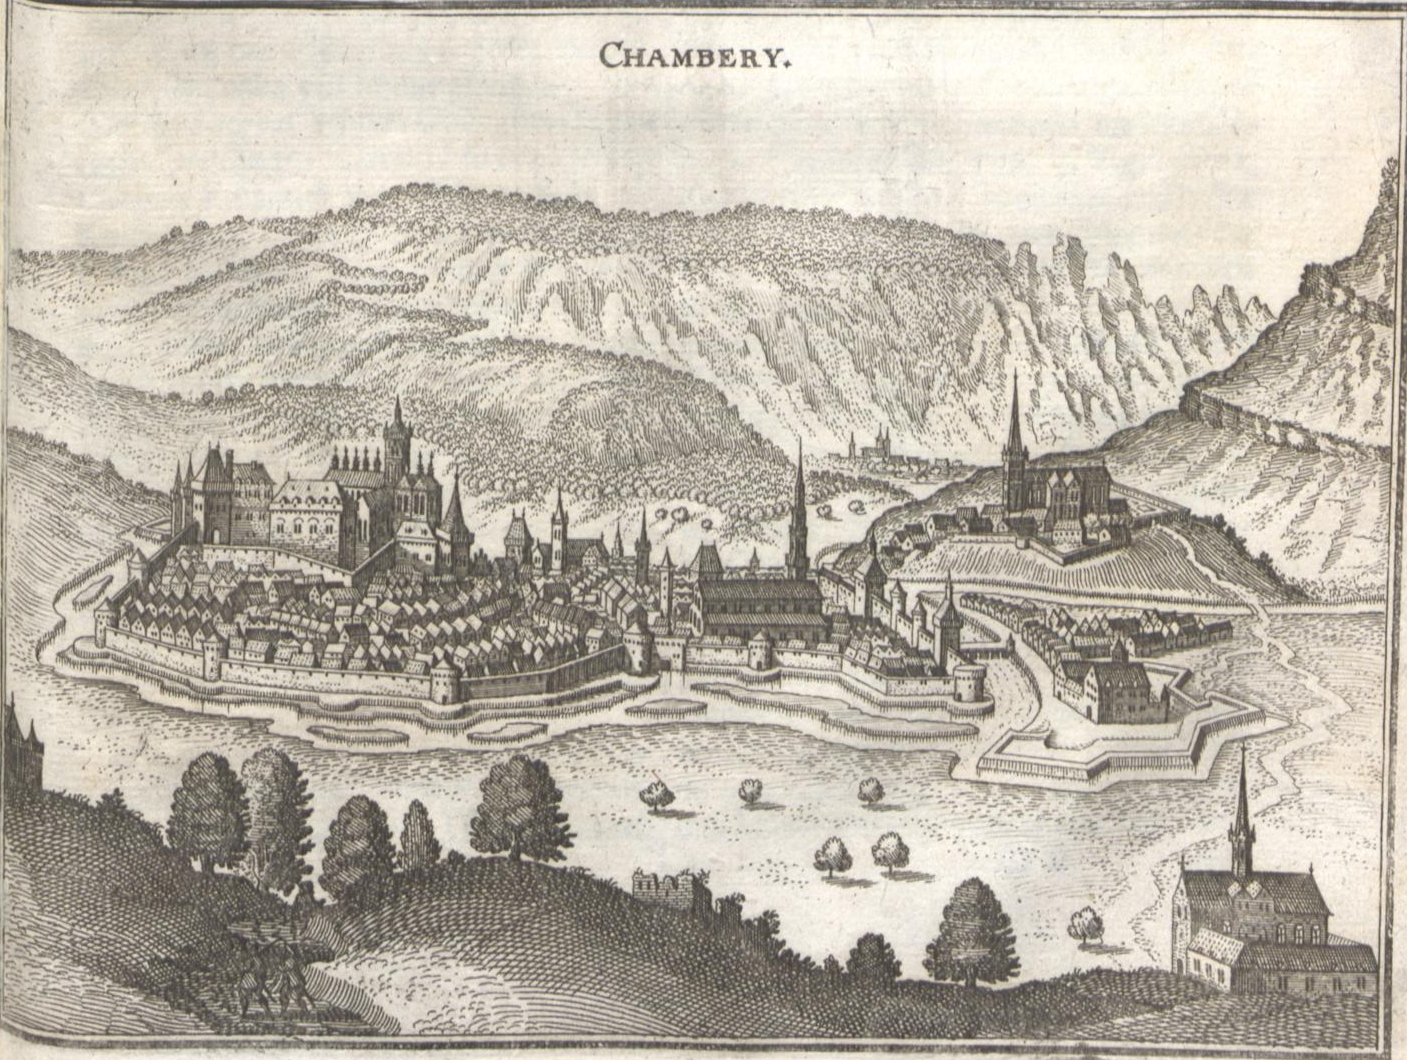 Castle Chambery in 1645, from Wikipedia article for Chambery.